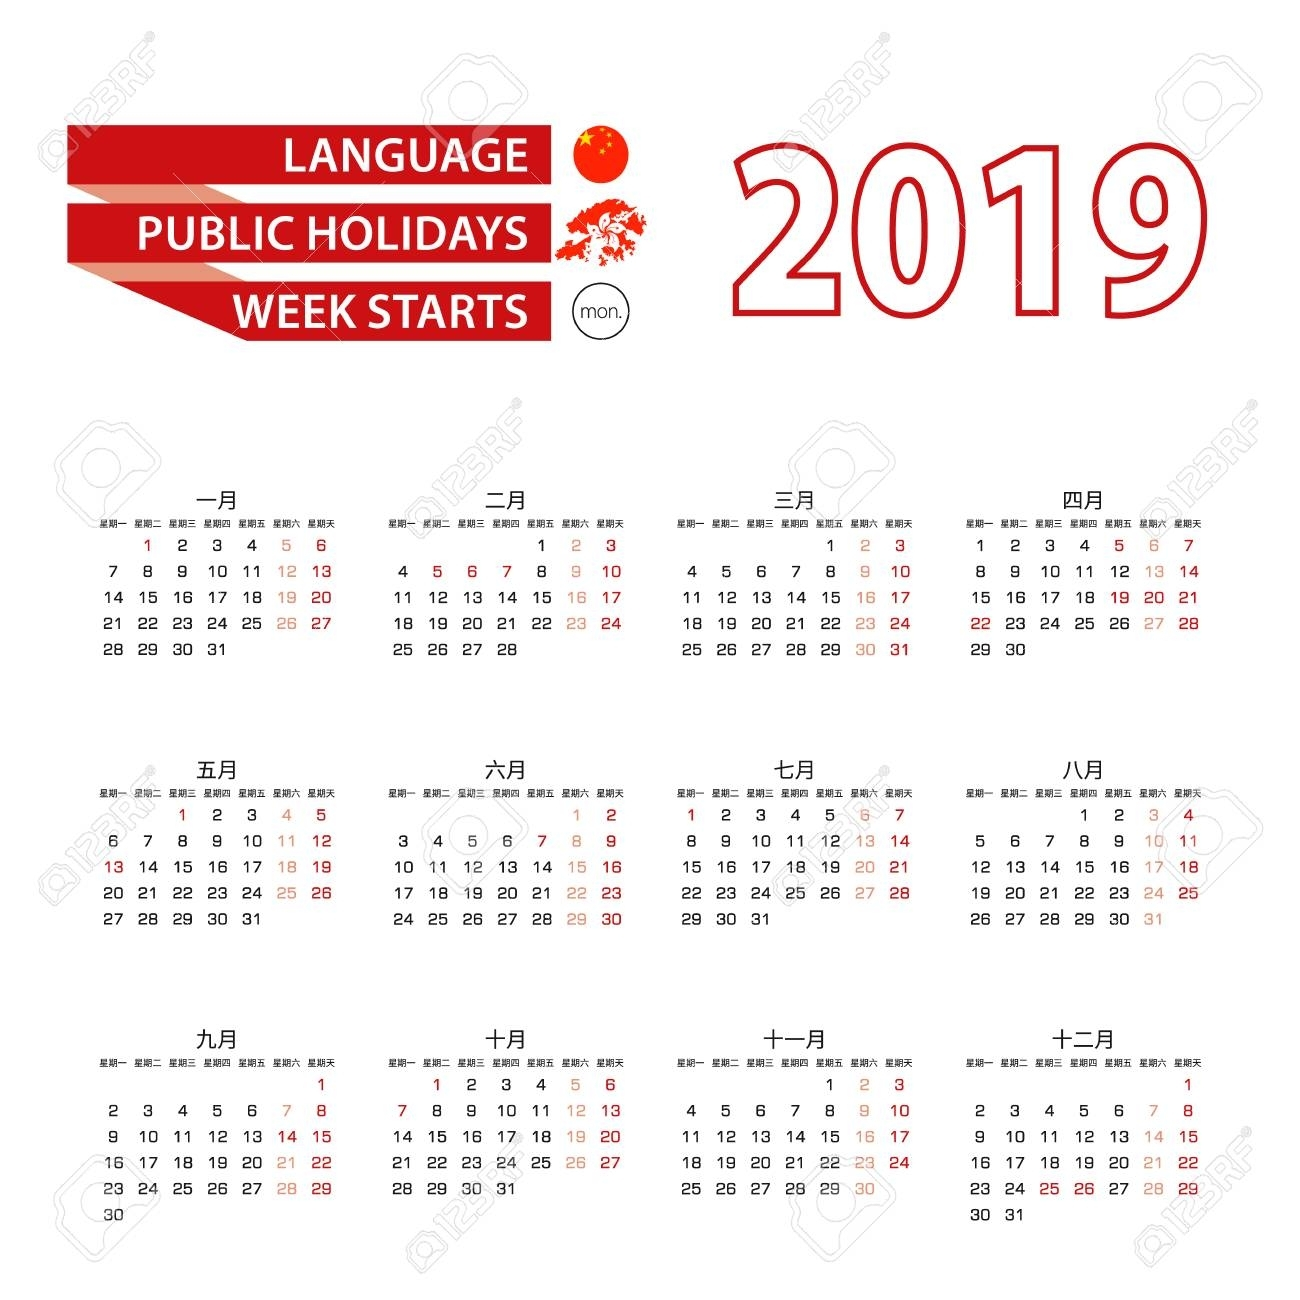 Calendar 2019 In Chinese Language With Public Holidays The Country..